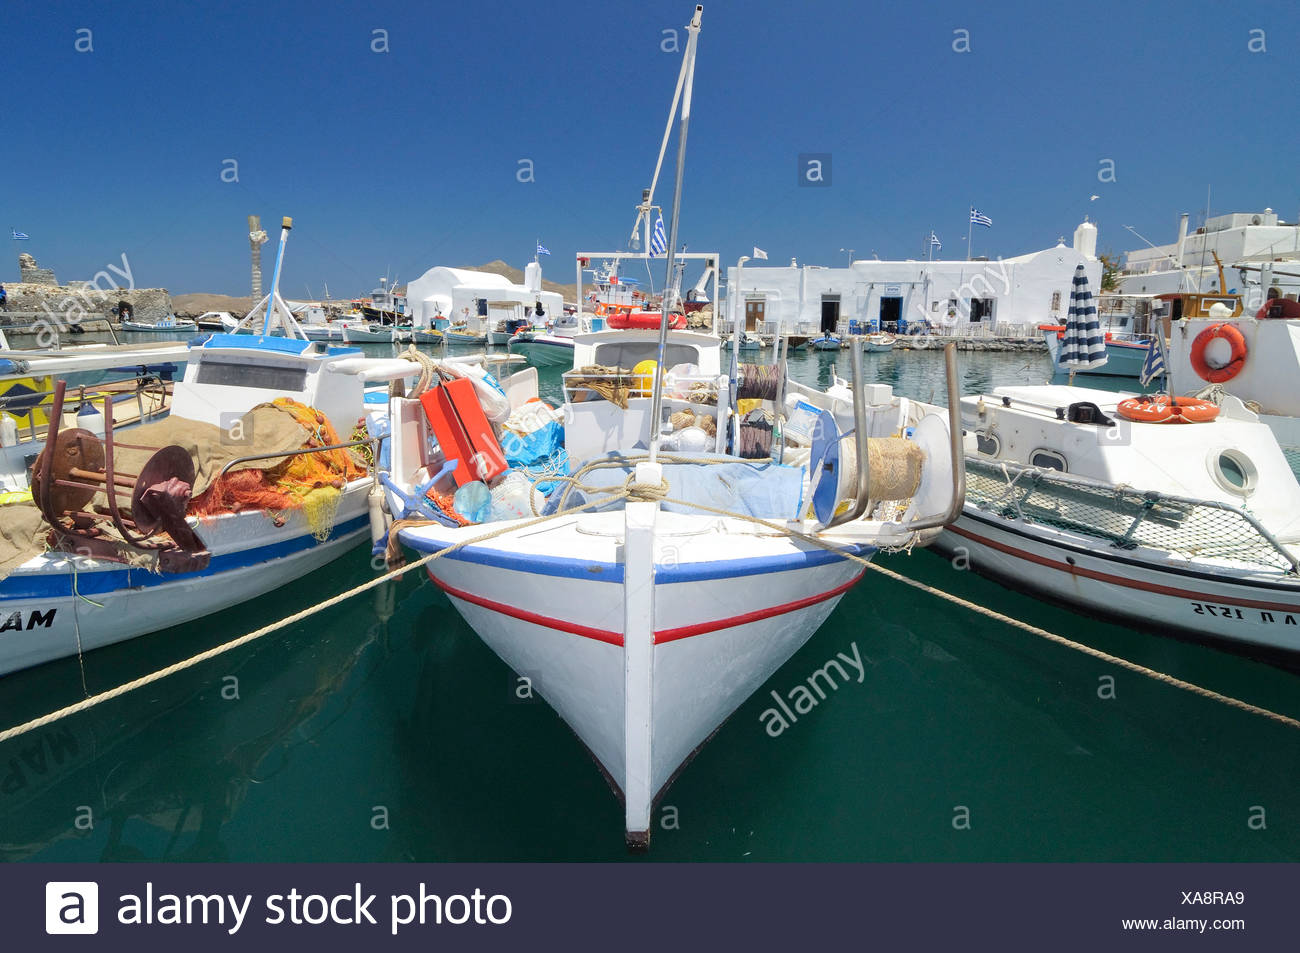 Fishing boats in the port of Naoussa, Paros, Cyclades, Griechenland, Europa - Stock Image